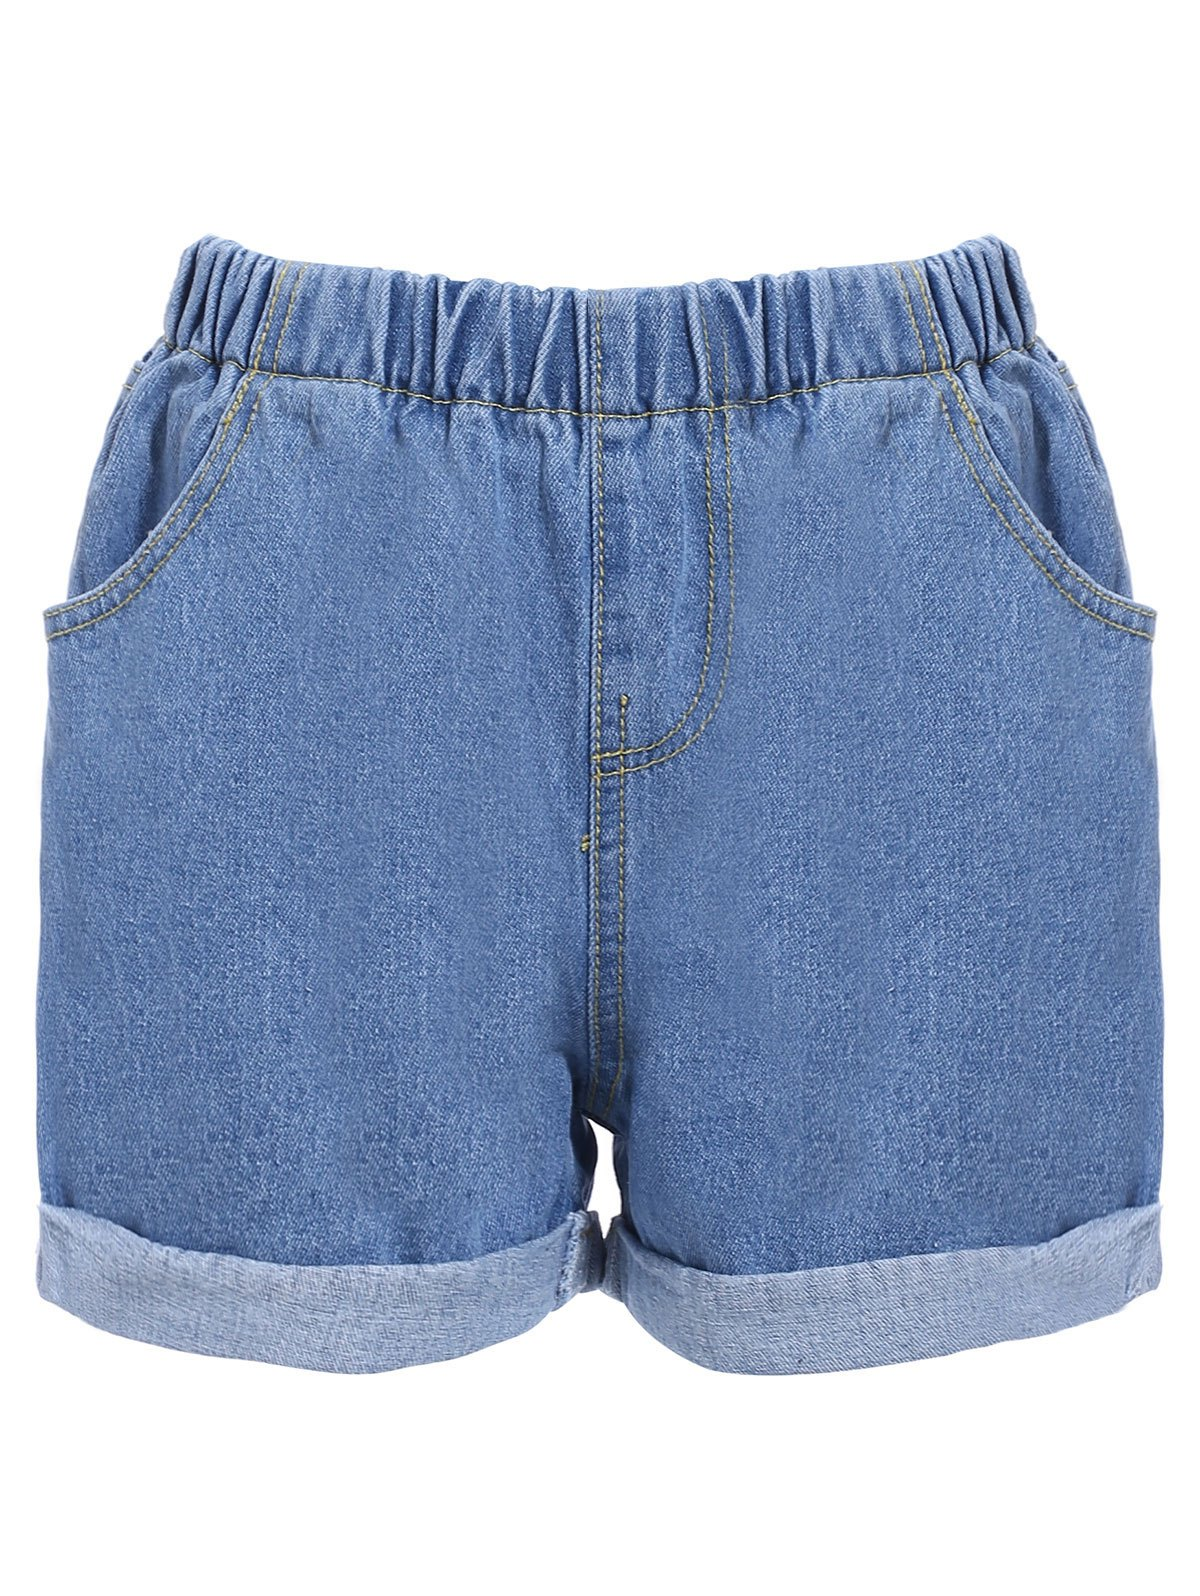 Trendy Elastic Waist Hemming Pocket Design Women's Shorts - LIGHT BLUE L